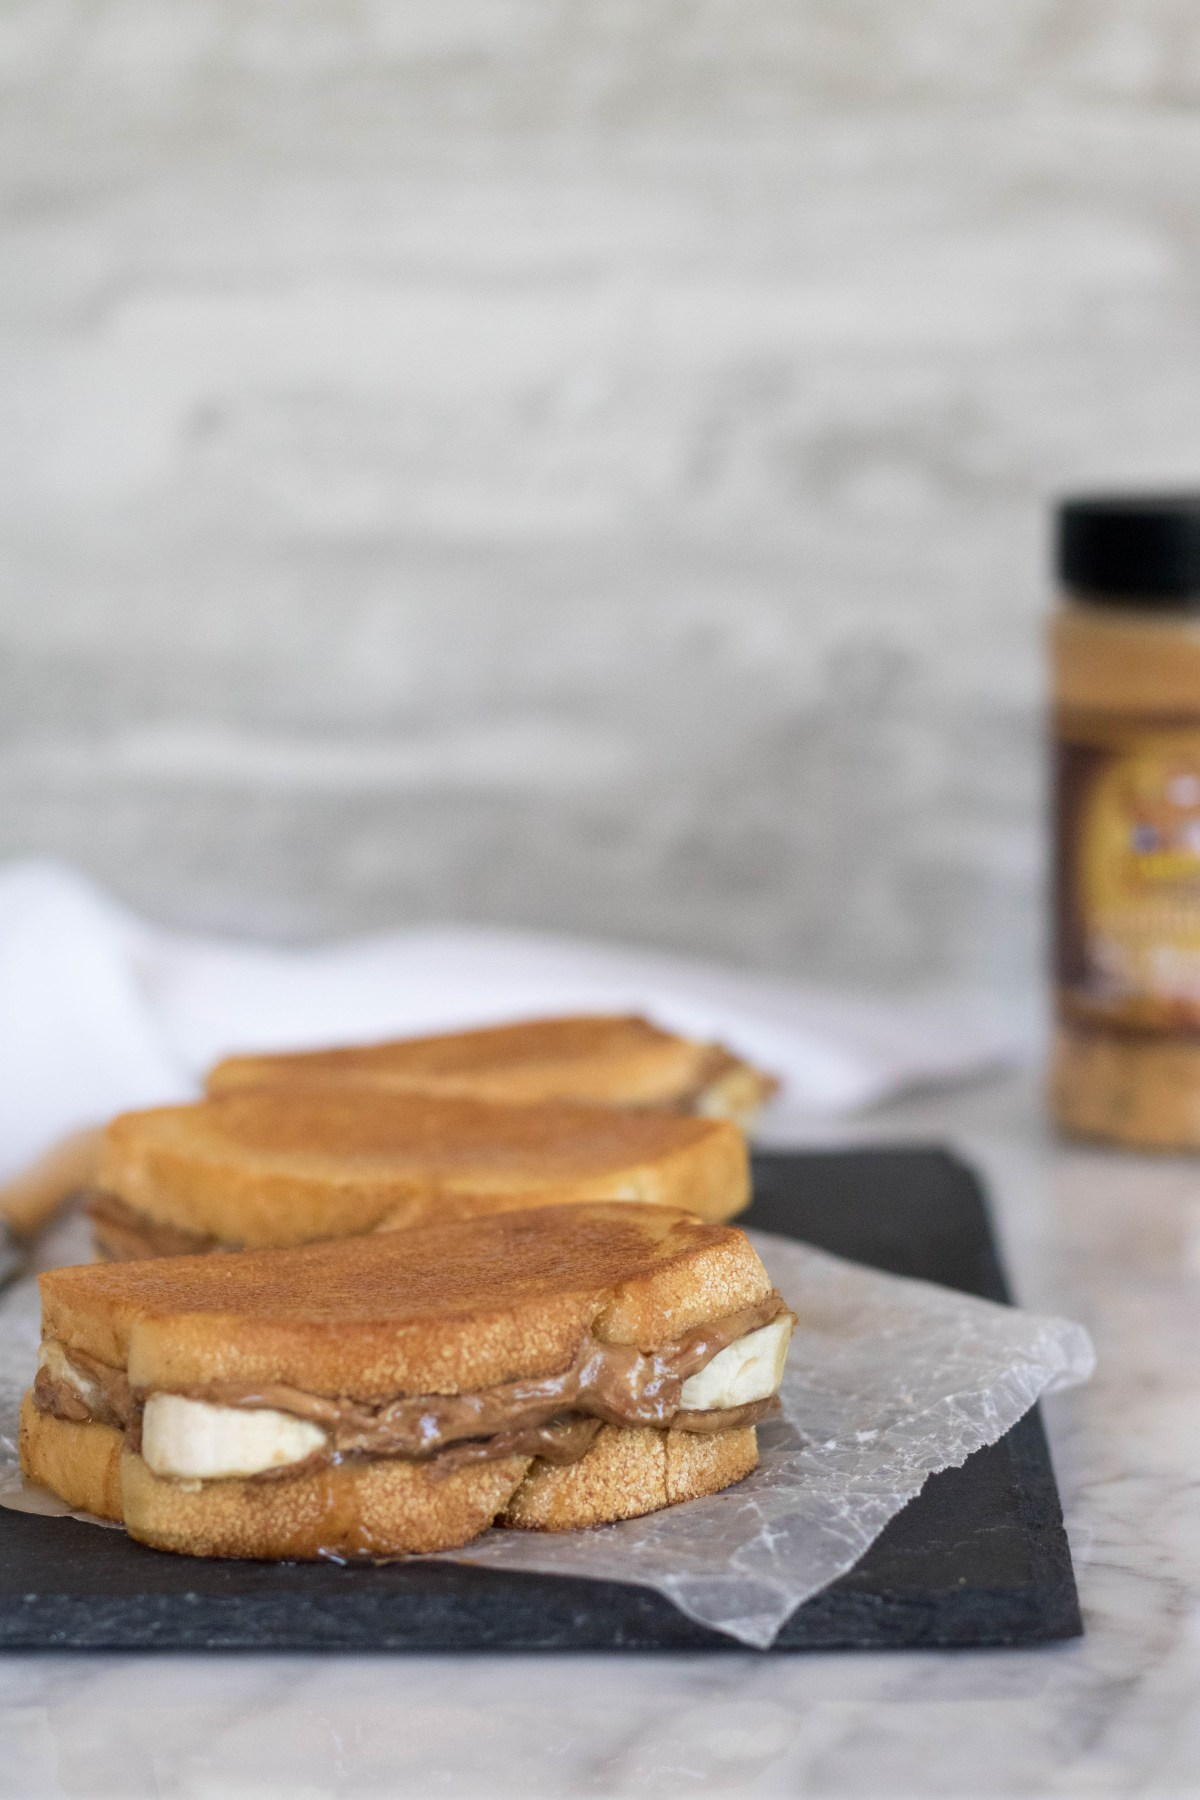 perfect trio of grilled banana sandwiches